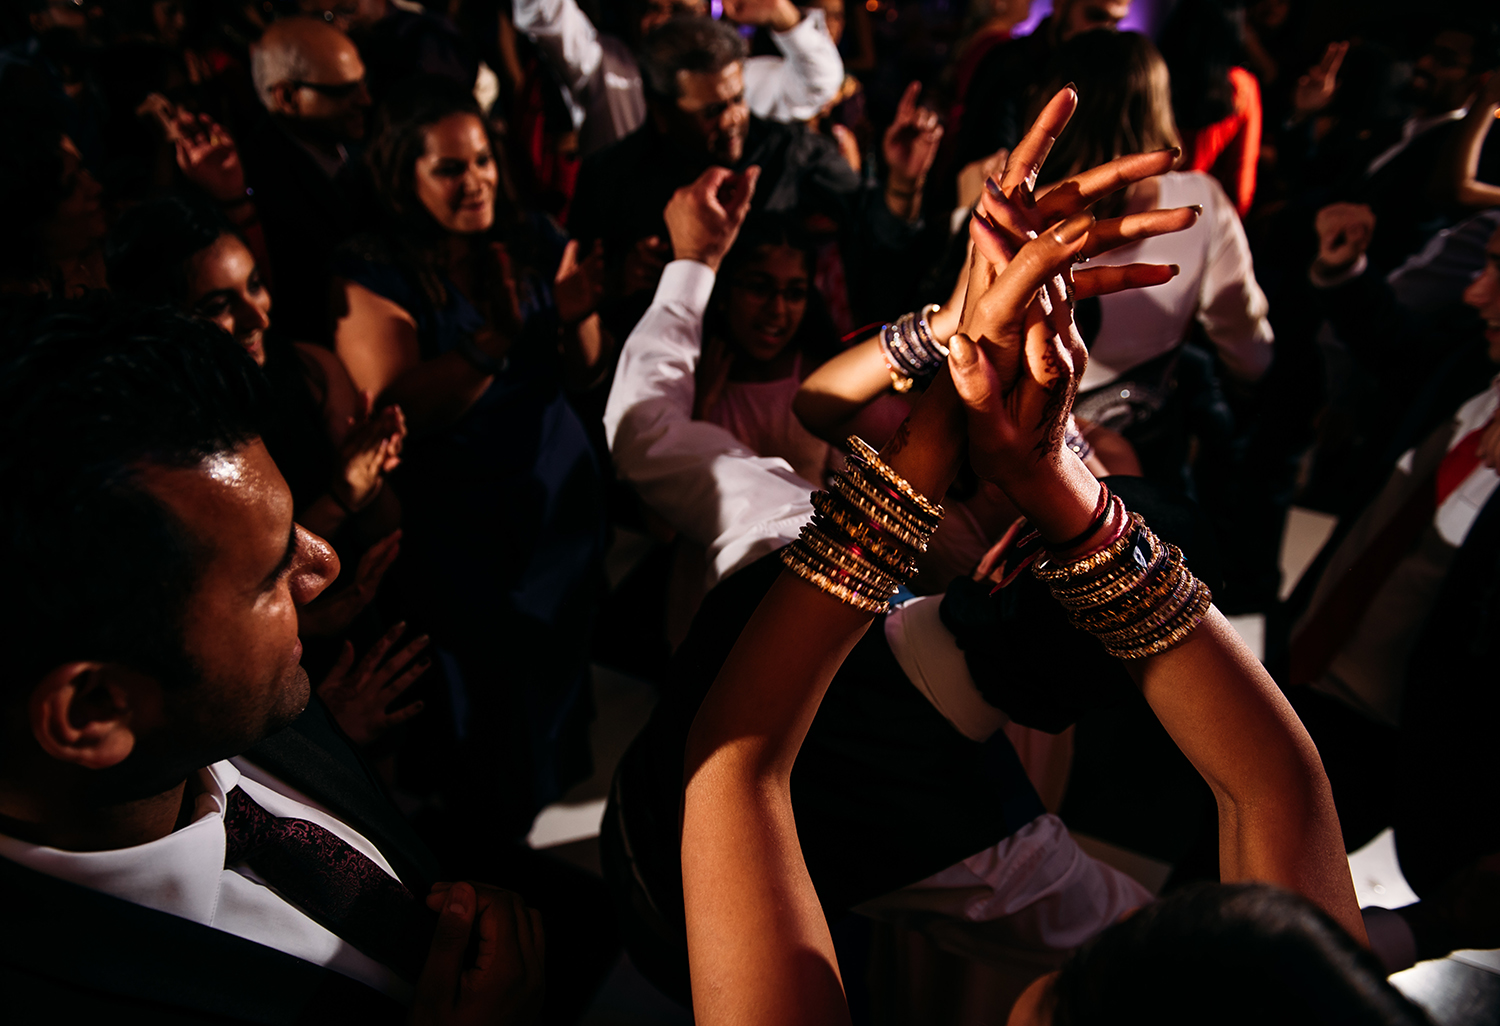 clasping hands on the dance floor